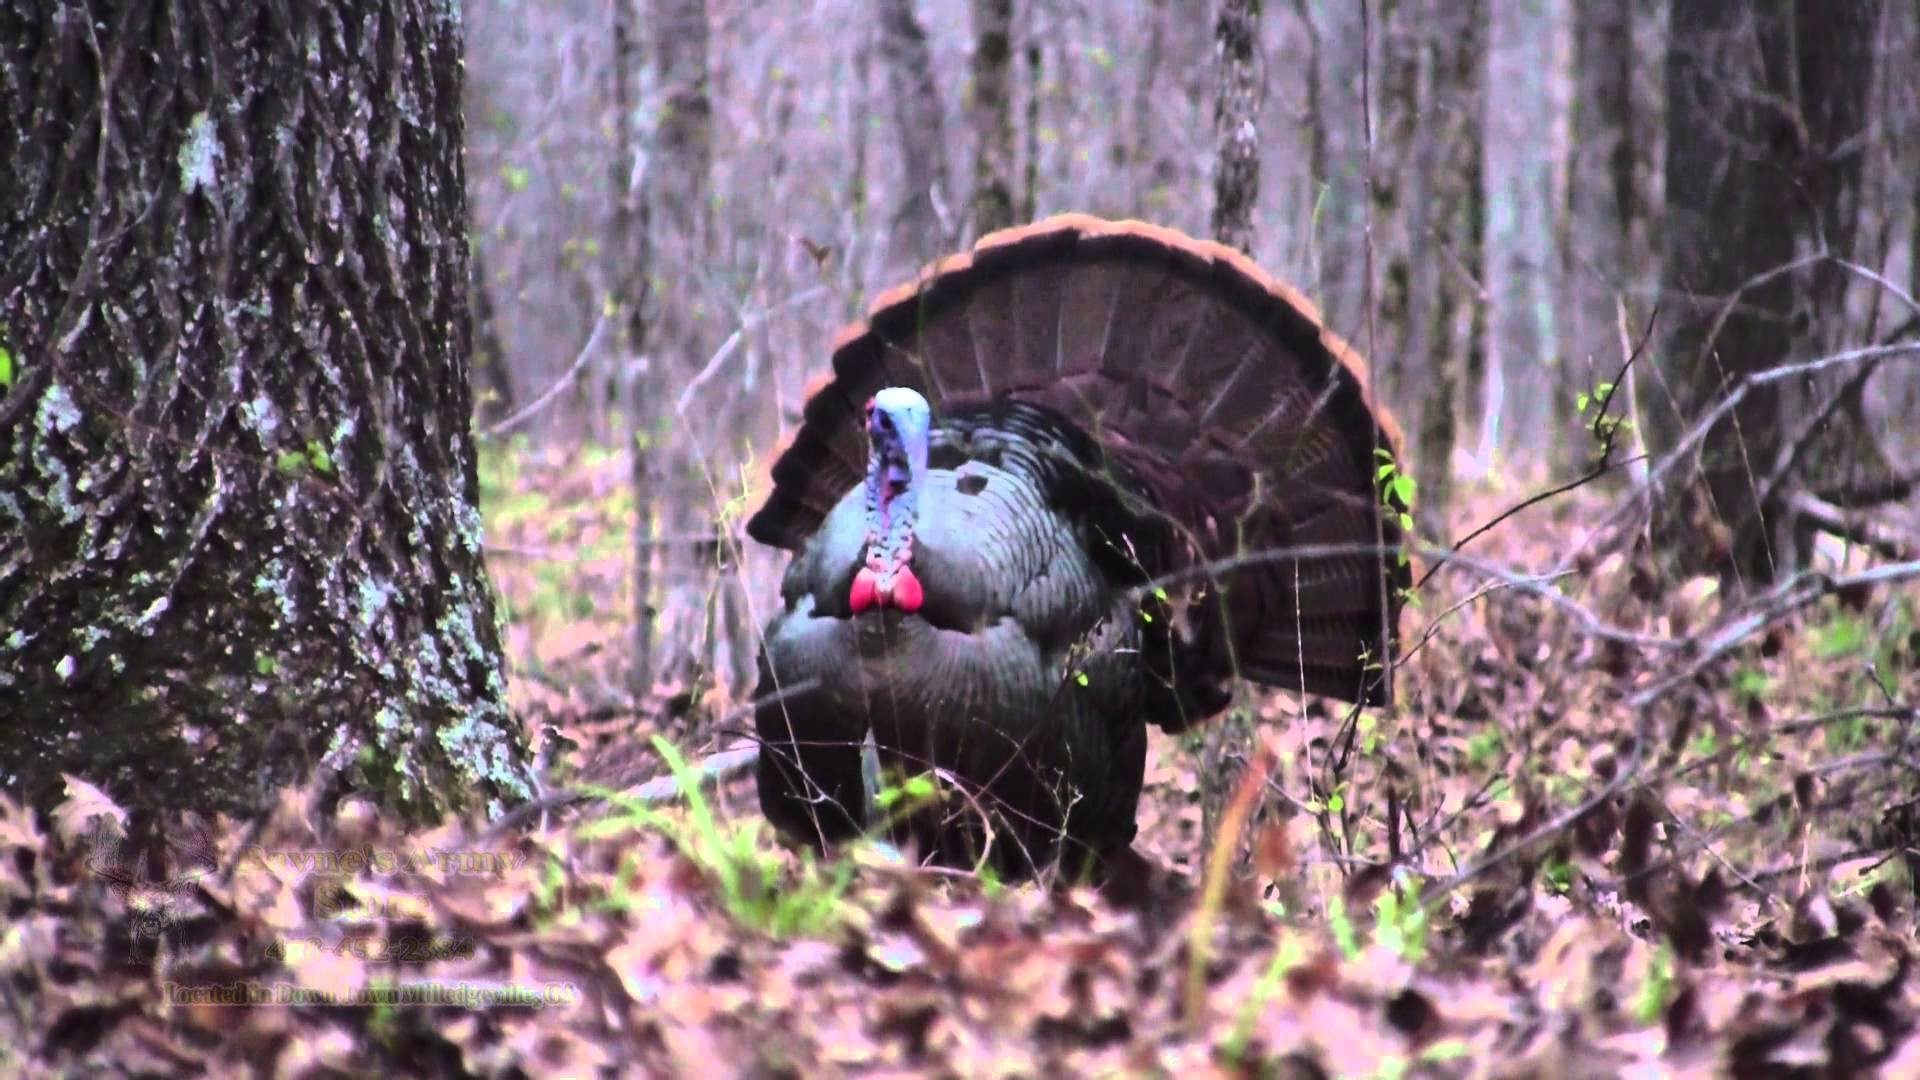 Spring Turkey Hunting Wallpaper 58 images 1920x1080